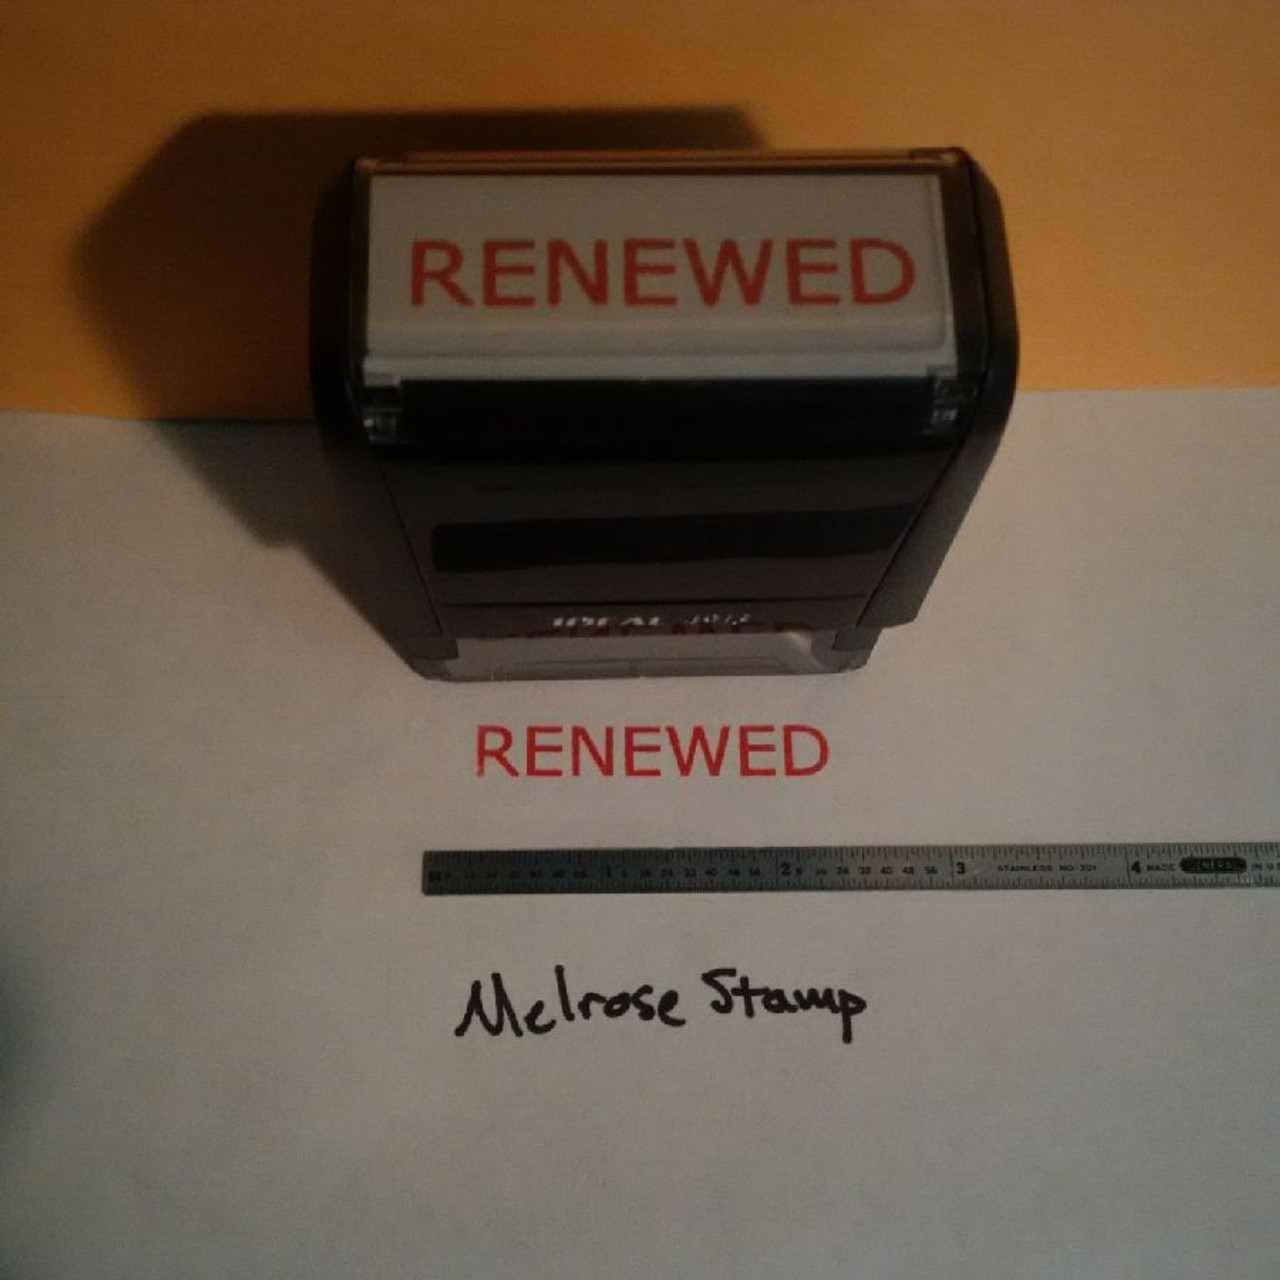 RENEWED Rubber Stamp for office use self-inking